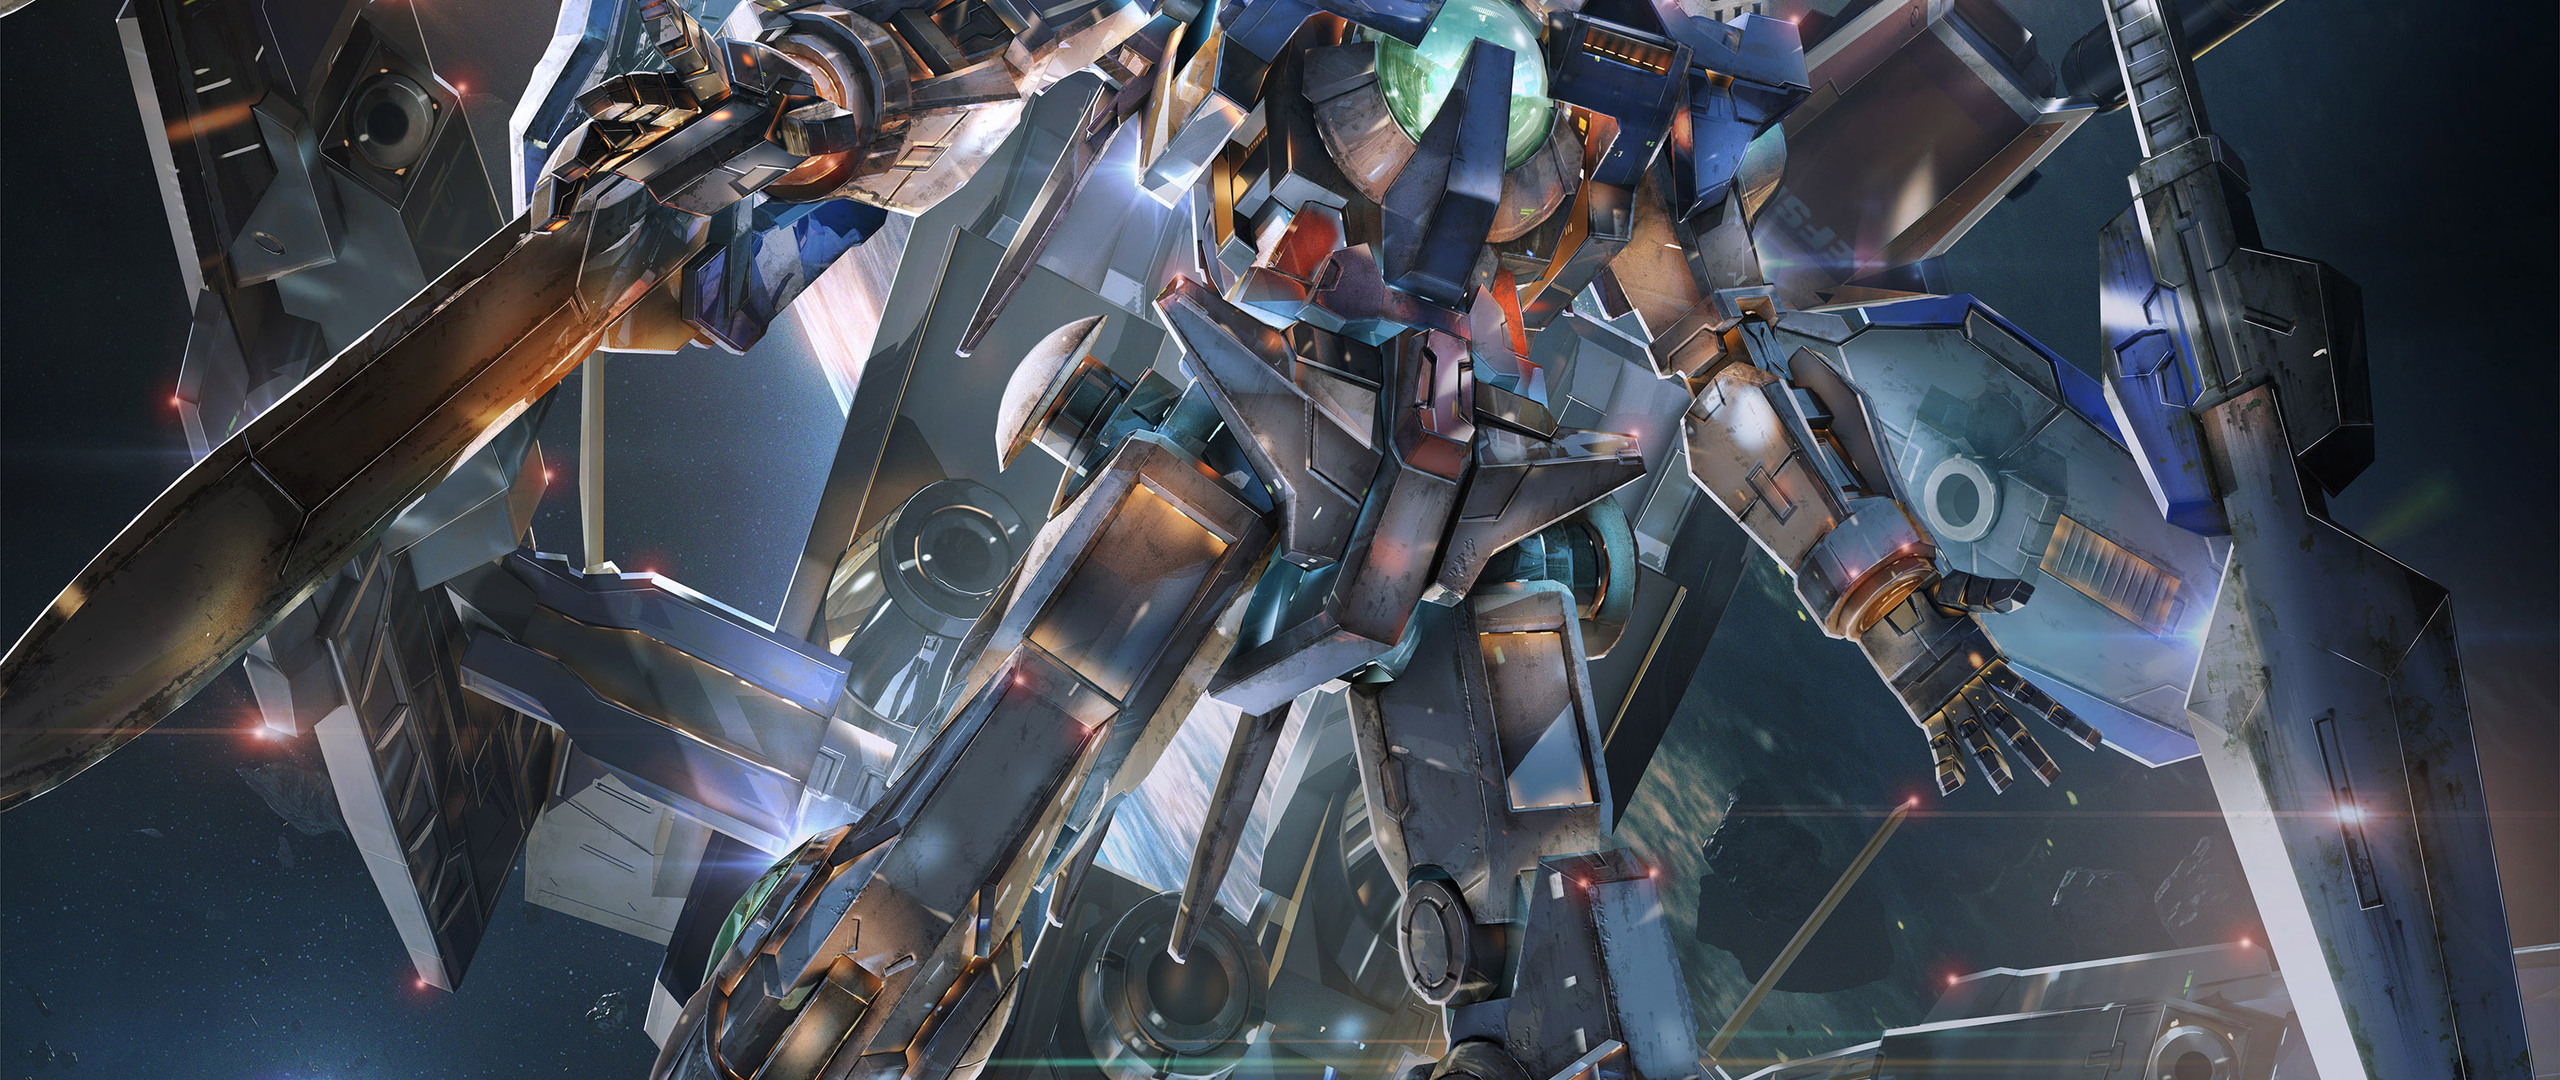 2560x1080 Gundam Versus 4k 2560x1080 Resolution Hd 4k Wallpapers Images Backgrounds Photos And Pictures